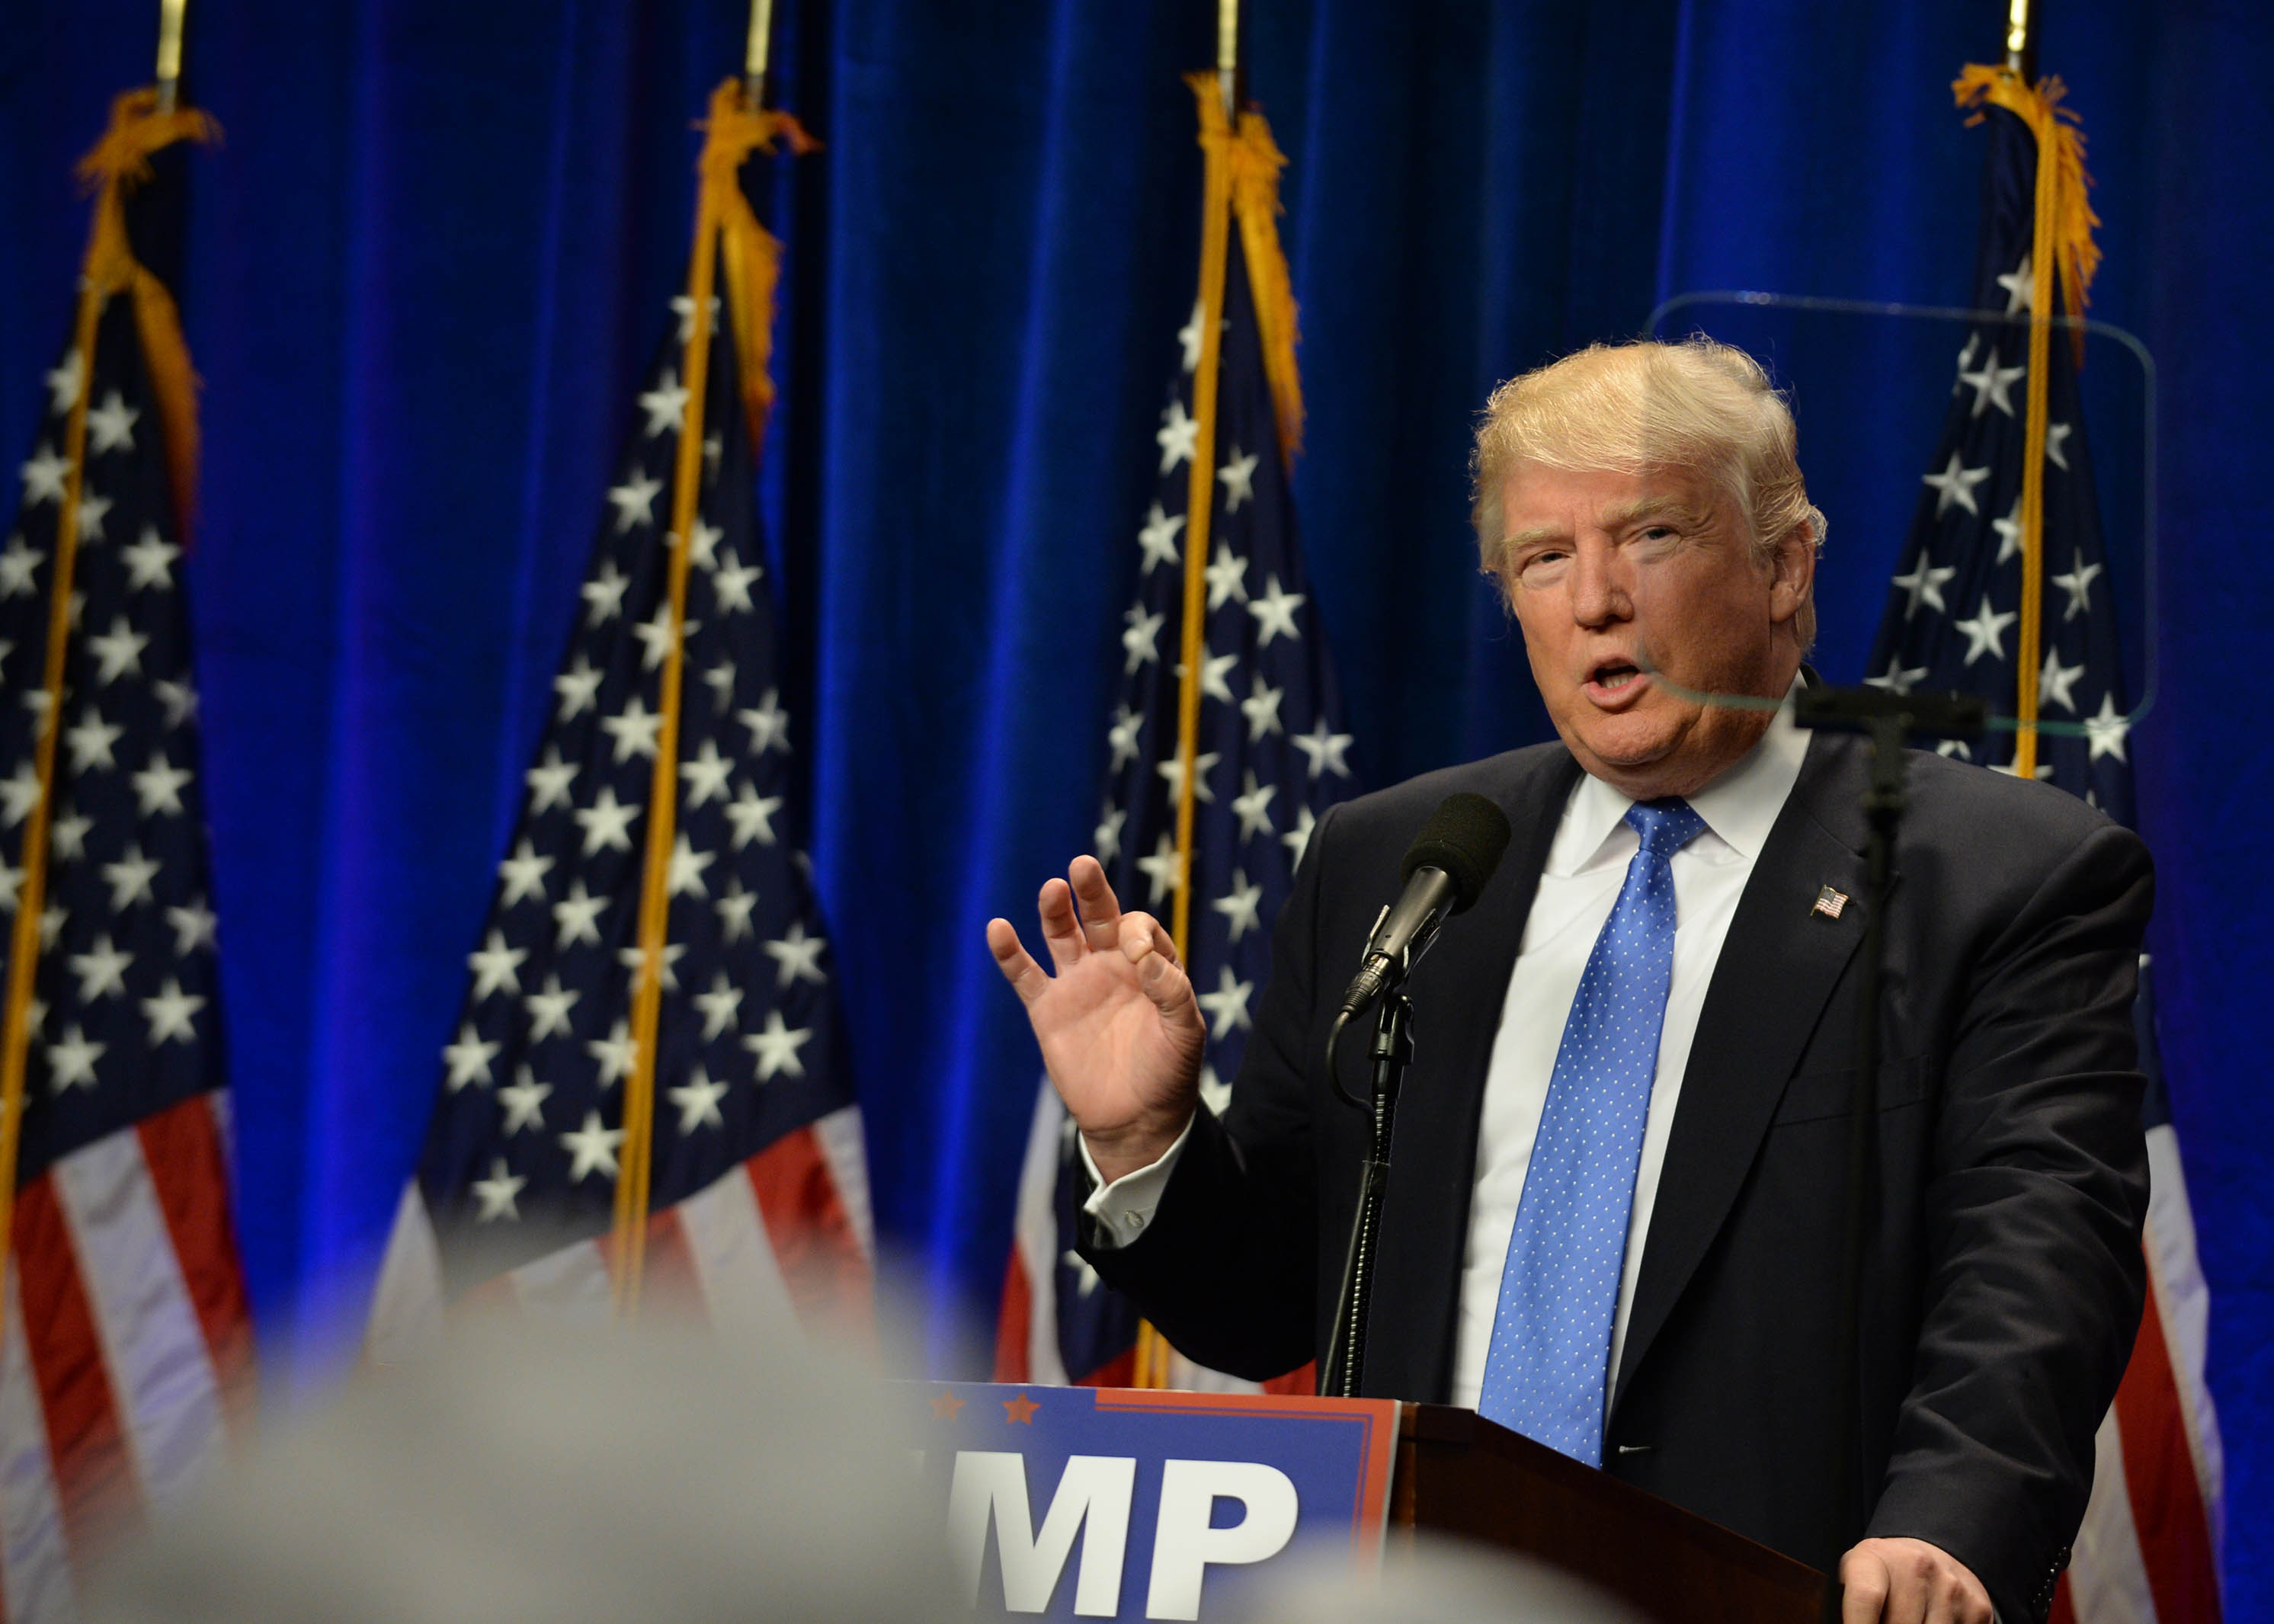 9 of the most egregious lies and inaccuracies in Donald Trump's foreign policy speech